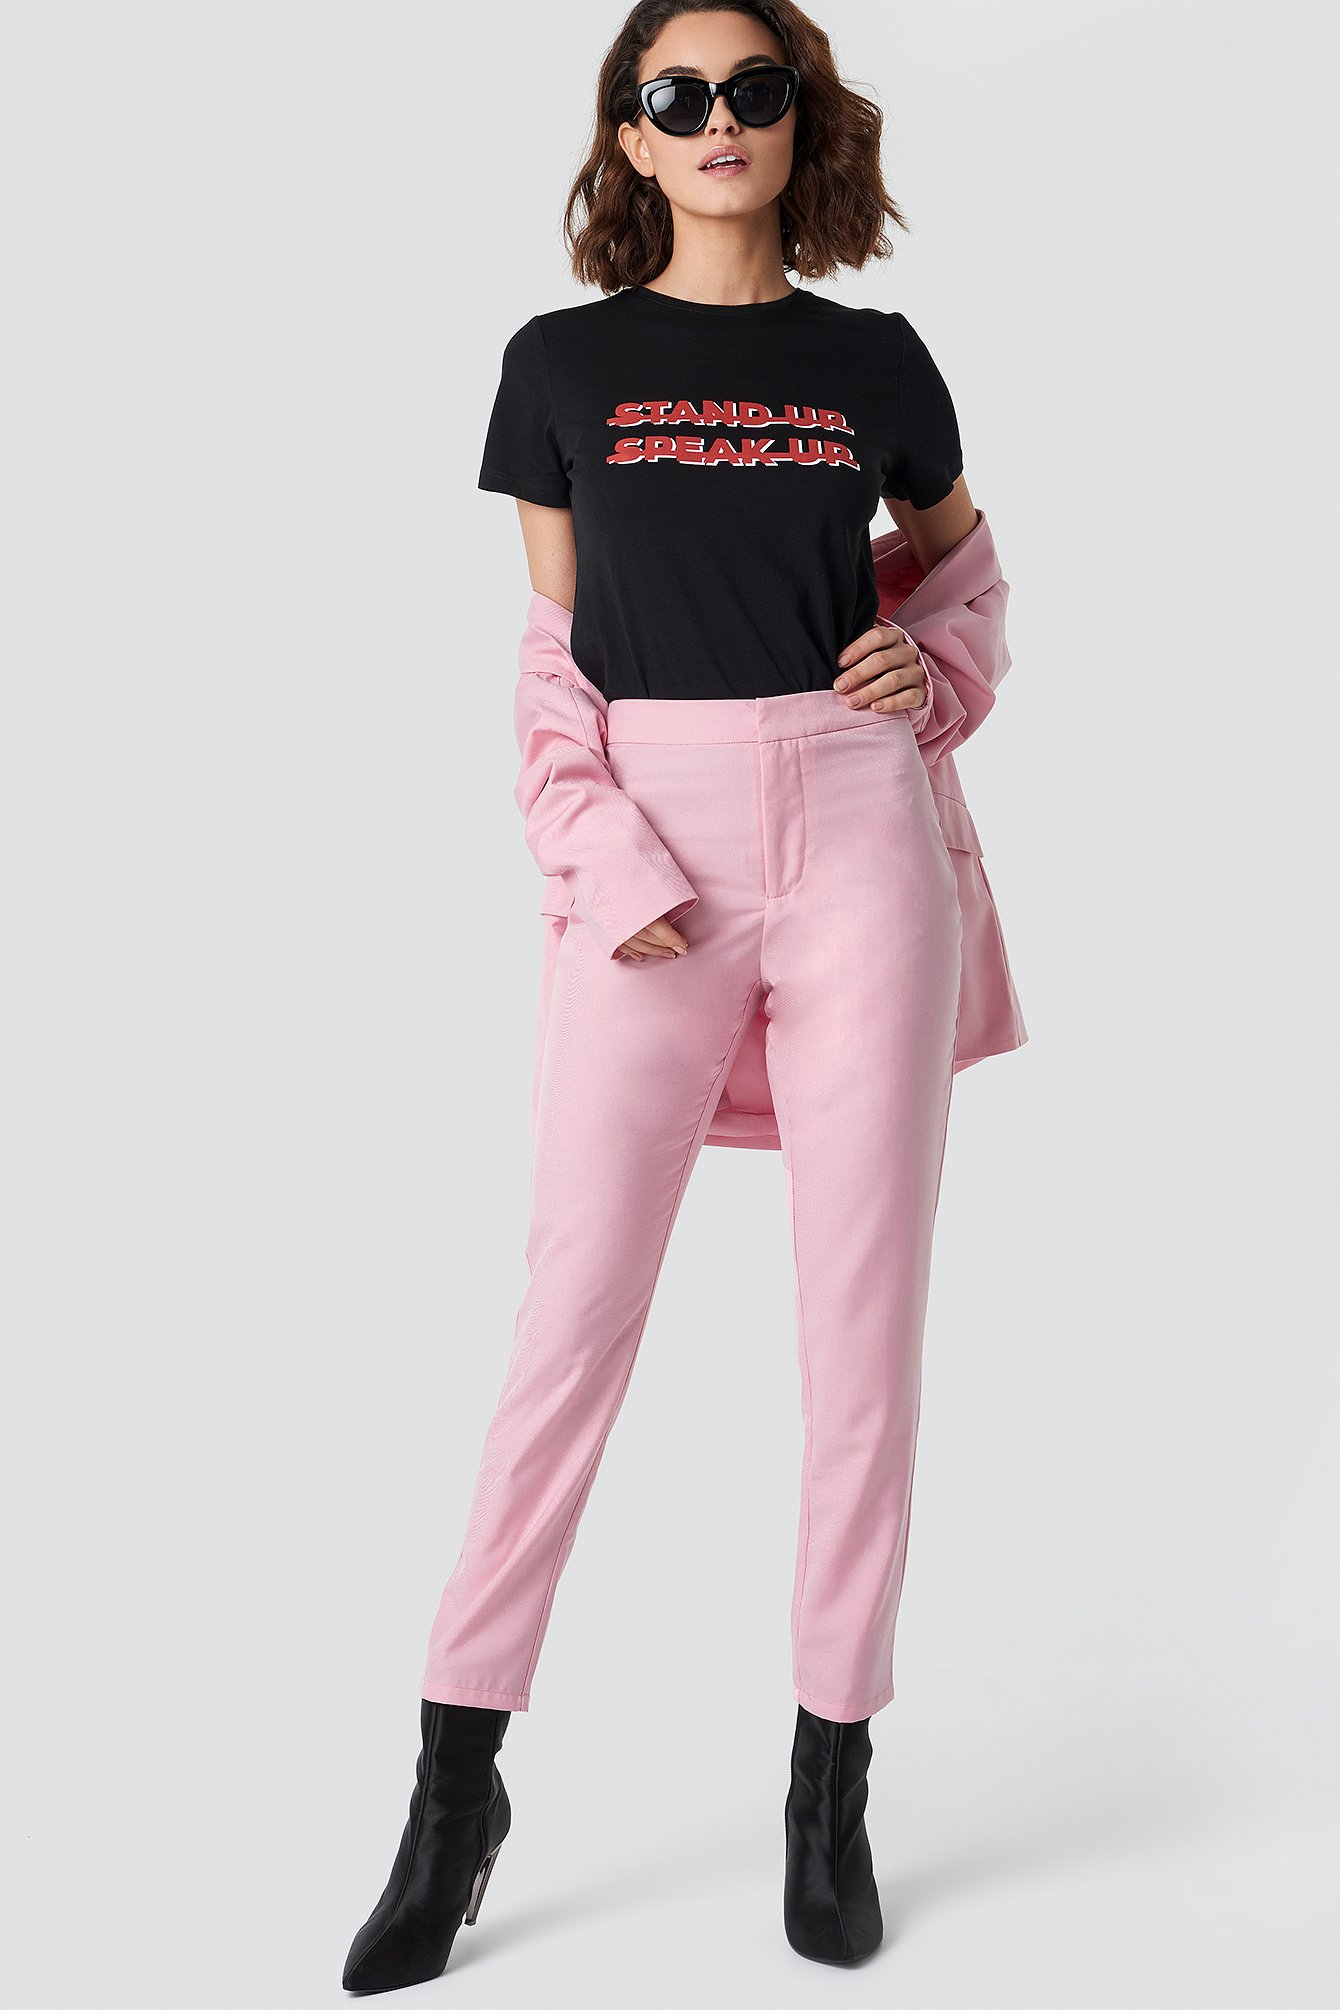 emilie briting x na-kd -  Ankle Pants - Pink